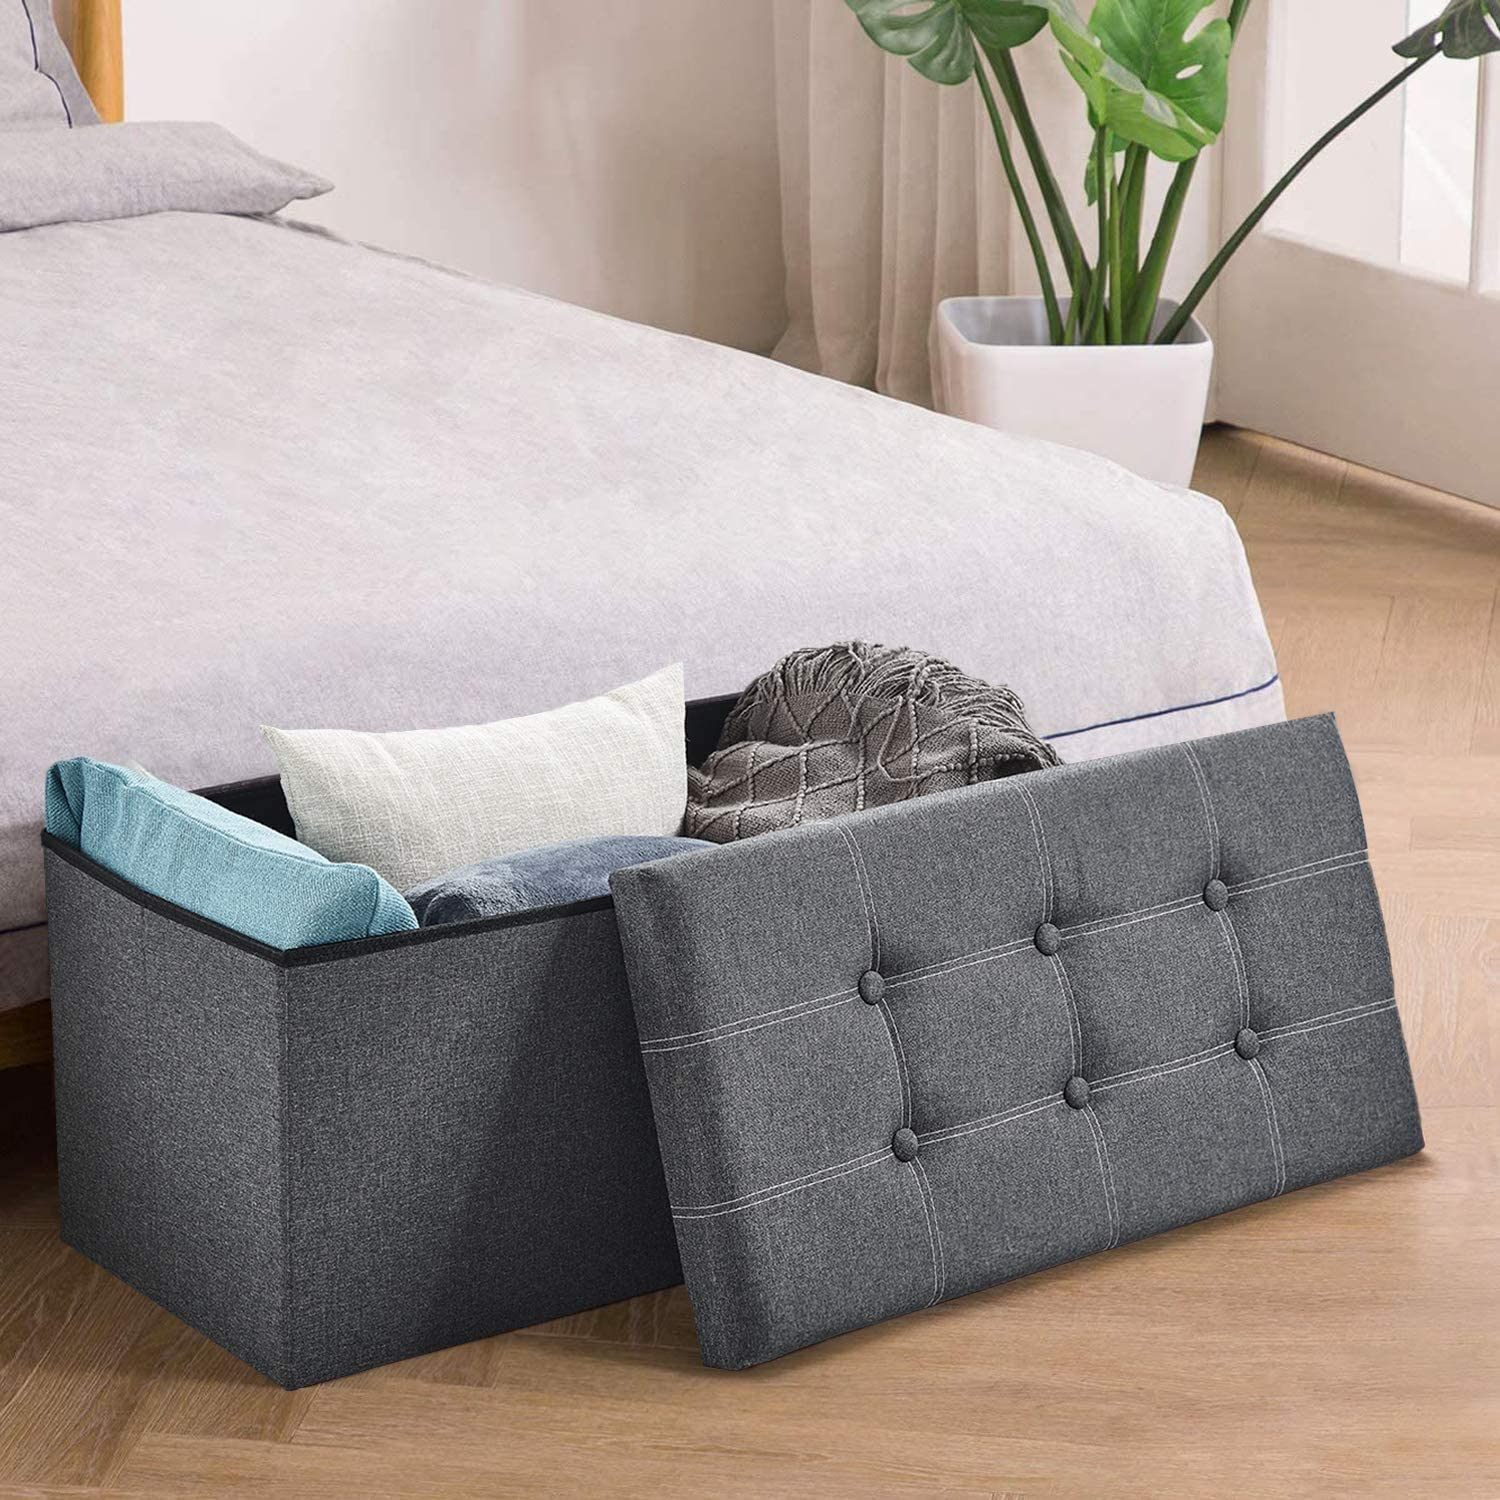 HOMBYS 30 inches Storage Ottoman Bench,Folding Storage Ottoman,Bench with 80L Storage Space,Support 350lbs,End of Bed Storage Seat, Linen Fabric Grey